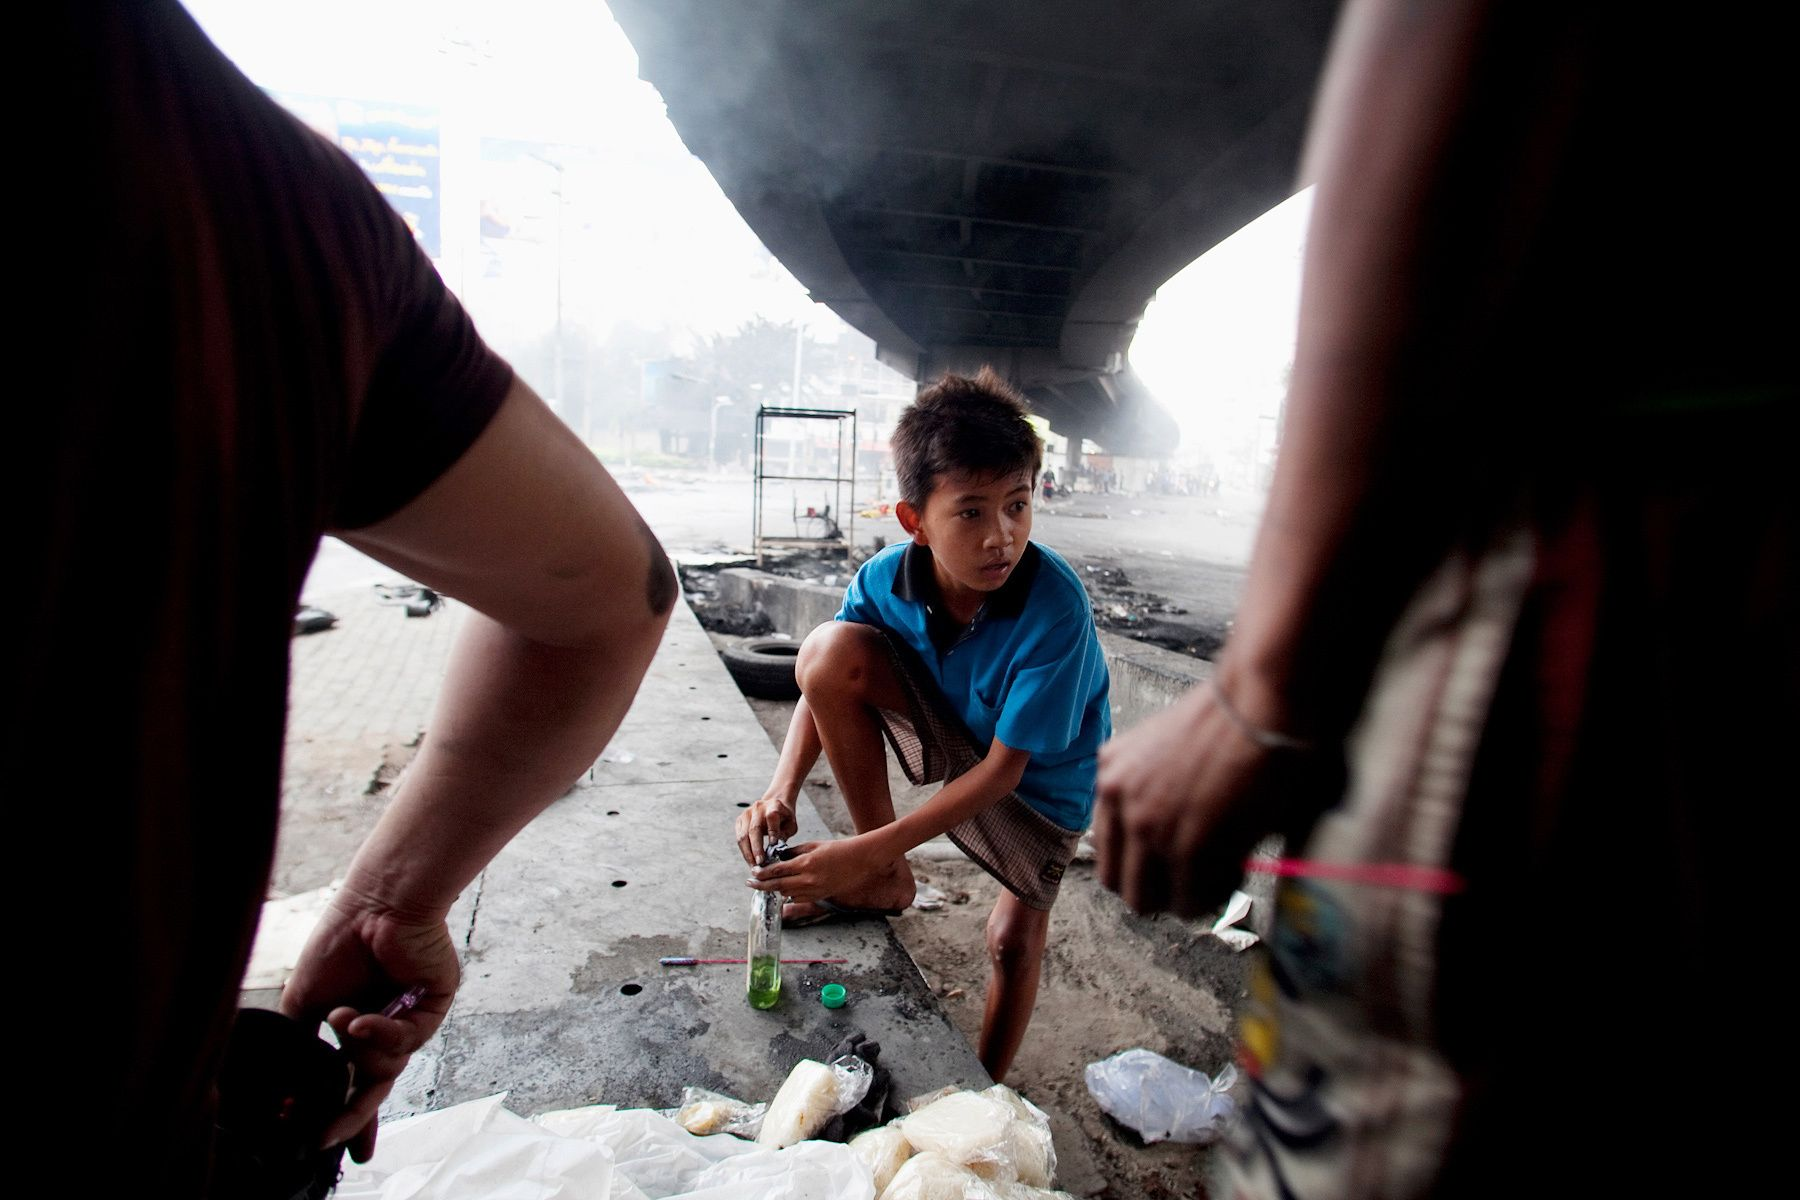 A young boy helps members of The United Front for DemocracyAgainst Dictatorship (UDD) prepare Molotov cocktails to throw atsoldiers.